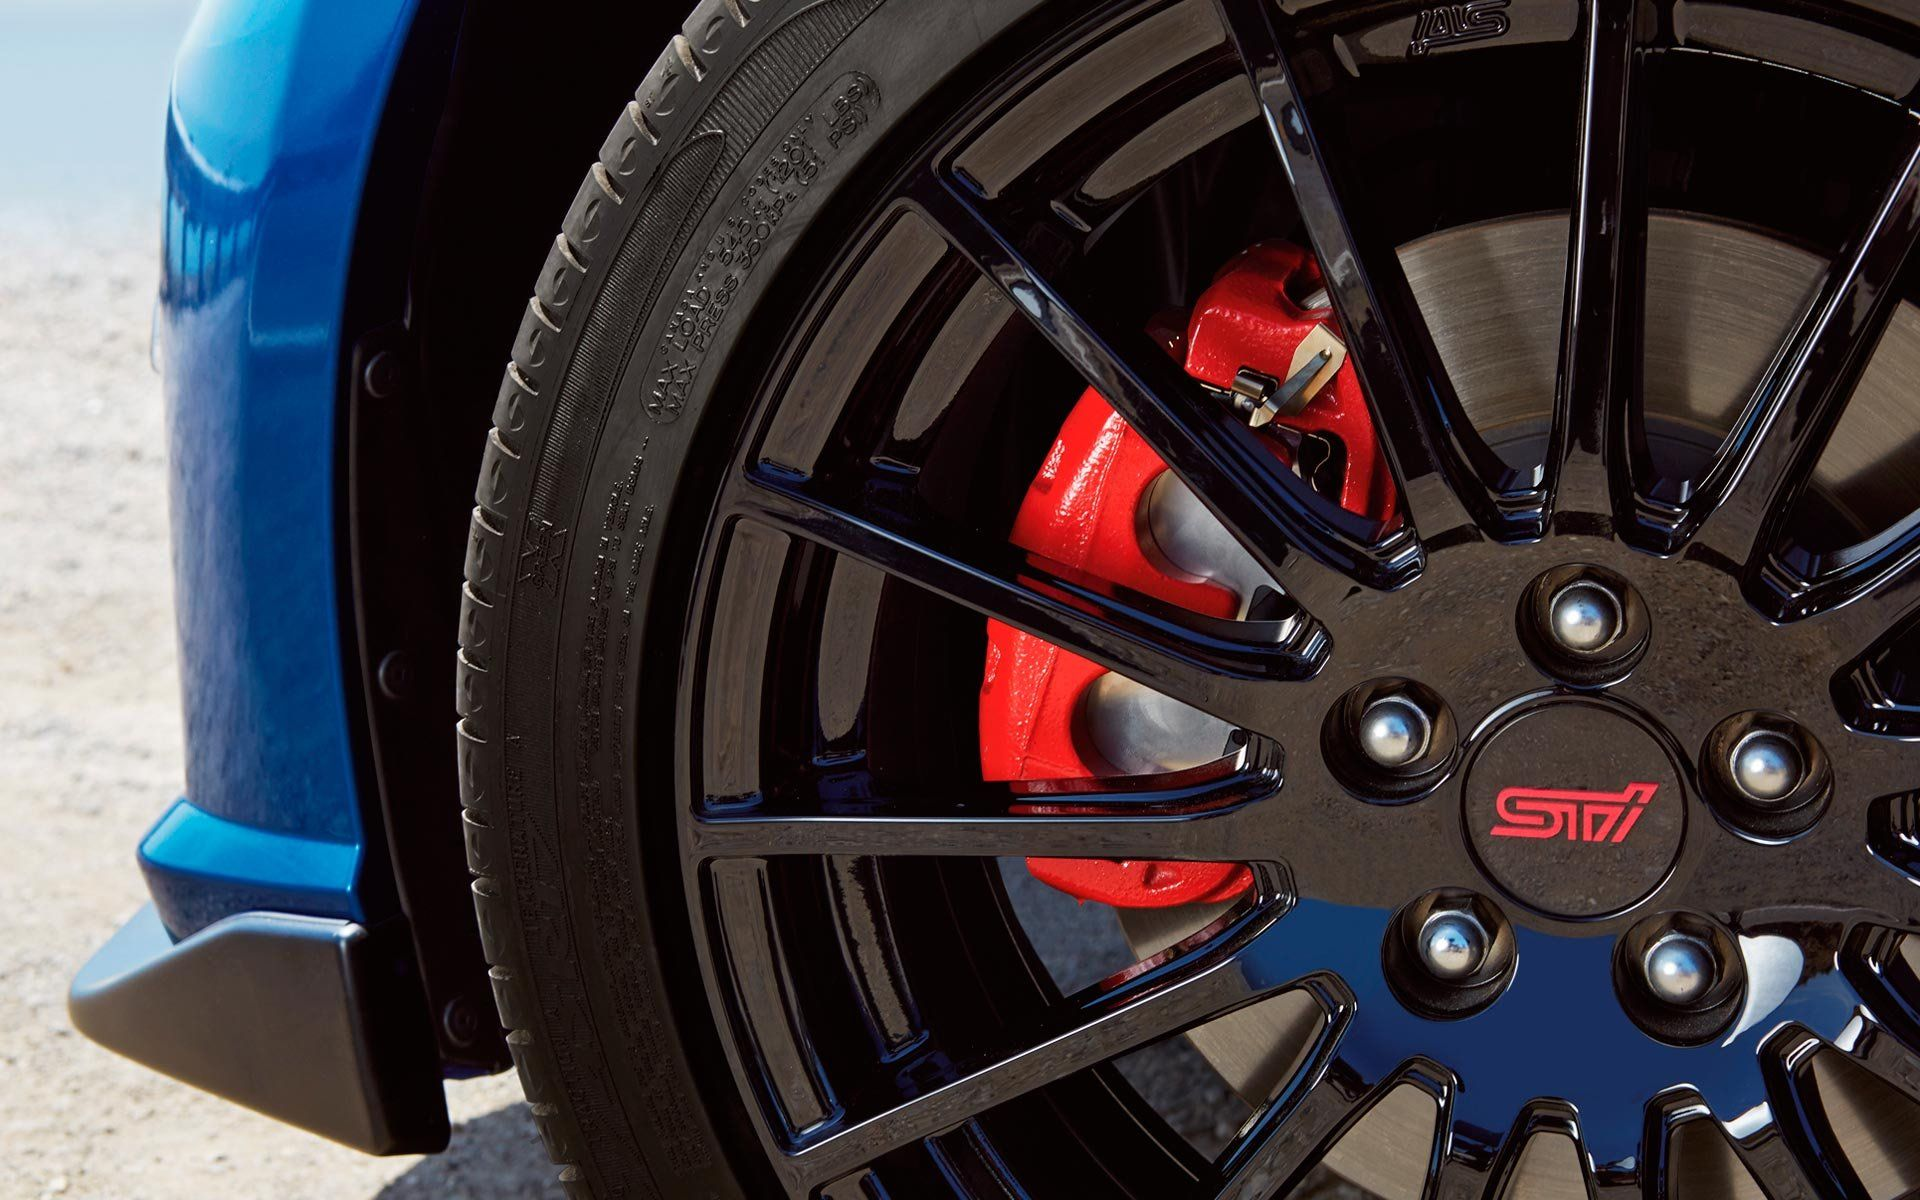 2015 Subaru Brz Red Painted Brake Calipers Wallpaper Want To